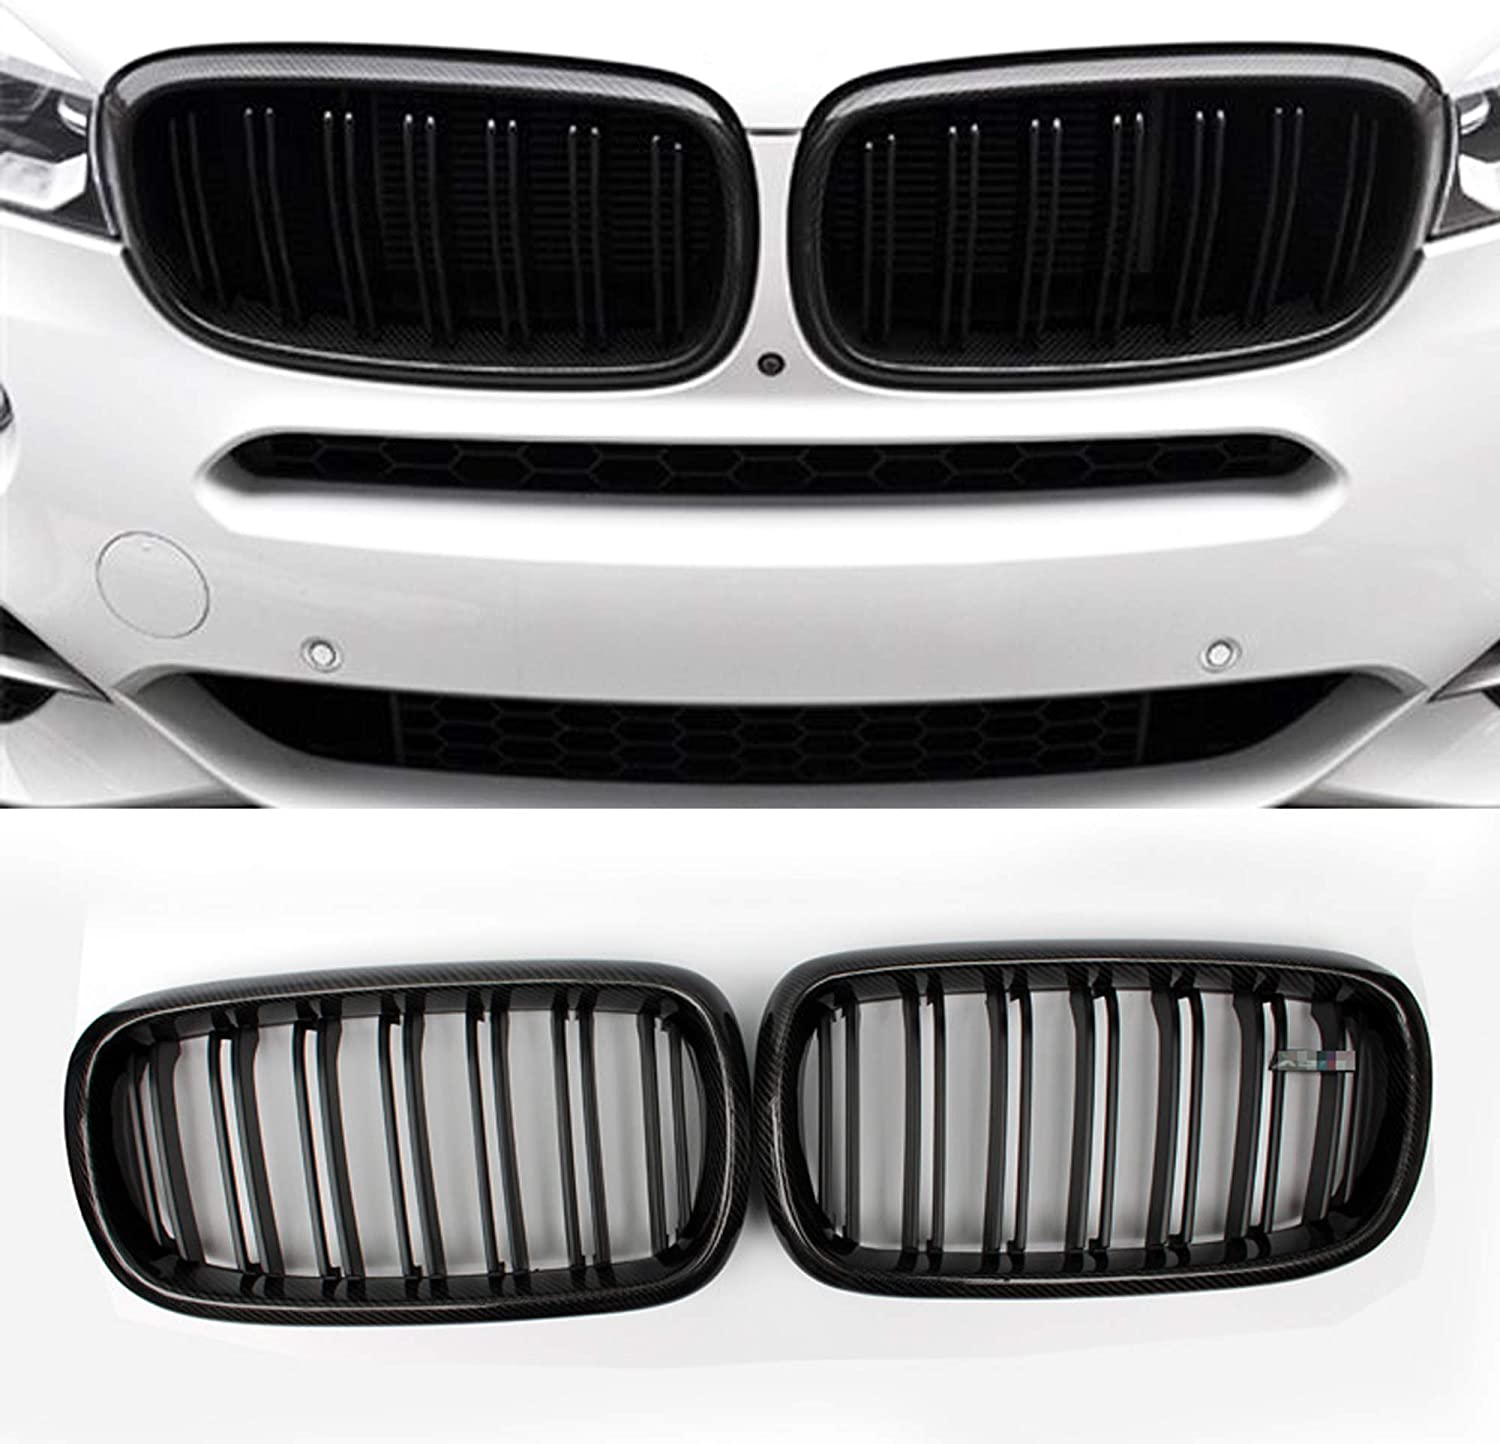 Carbon Fiber Front Replacement Kidney Grille Grill X5 Series F15 X6 Series F16 X5M F85 X6M F86 Black